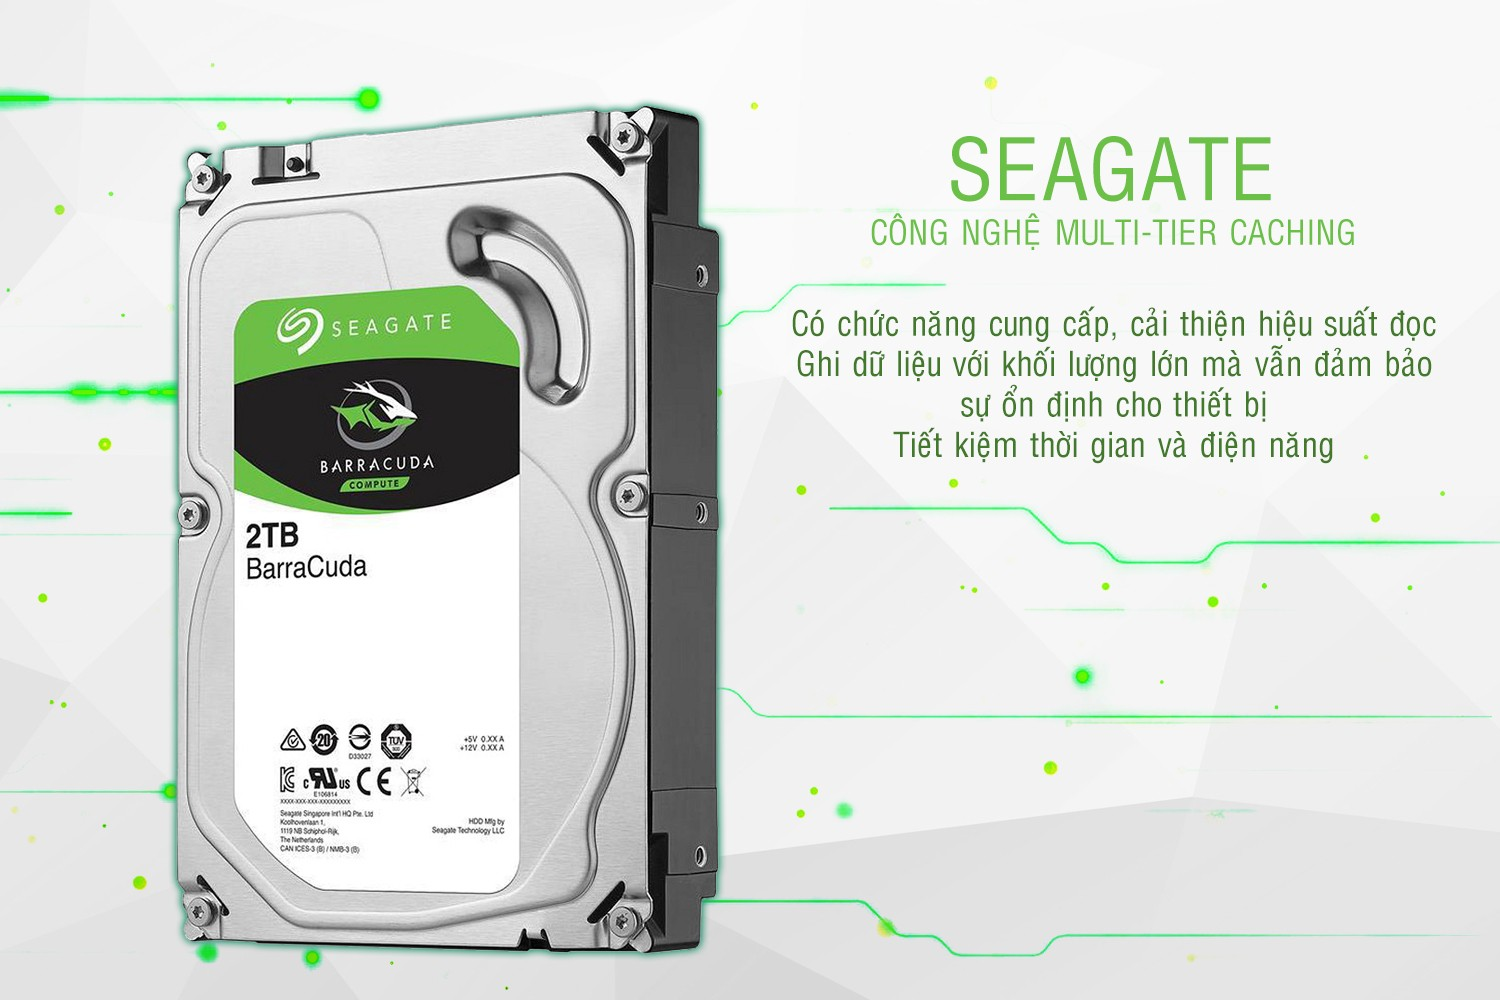 Ổ cứng HDD Seagate BarraCuda 2TB 7200rpm 256MB (ST2000DM008)